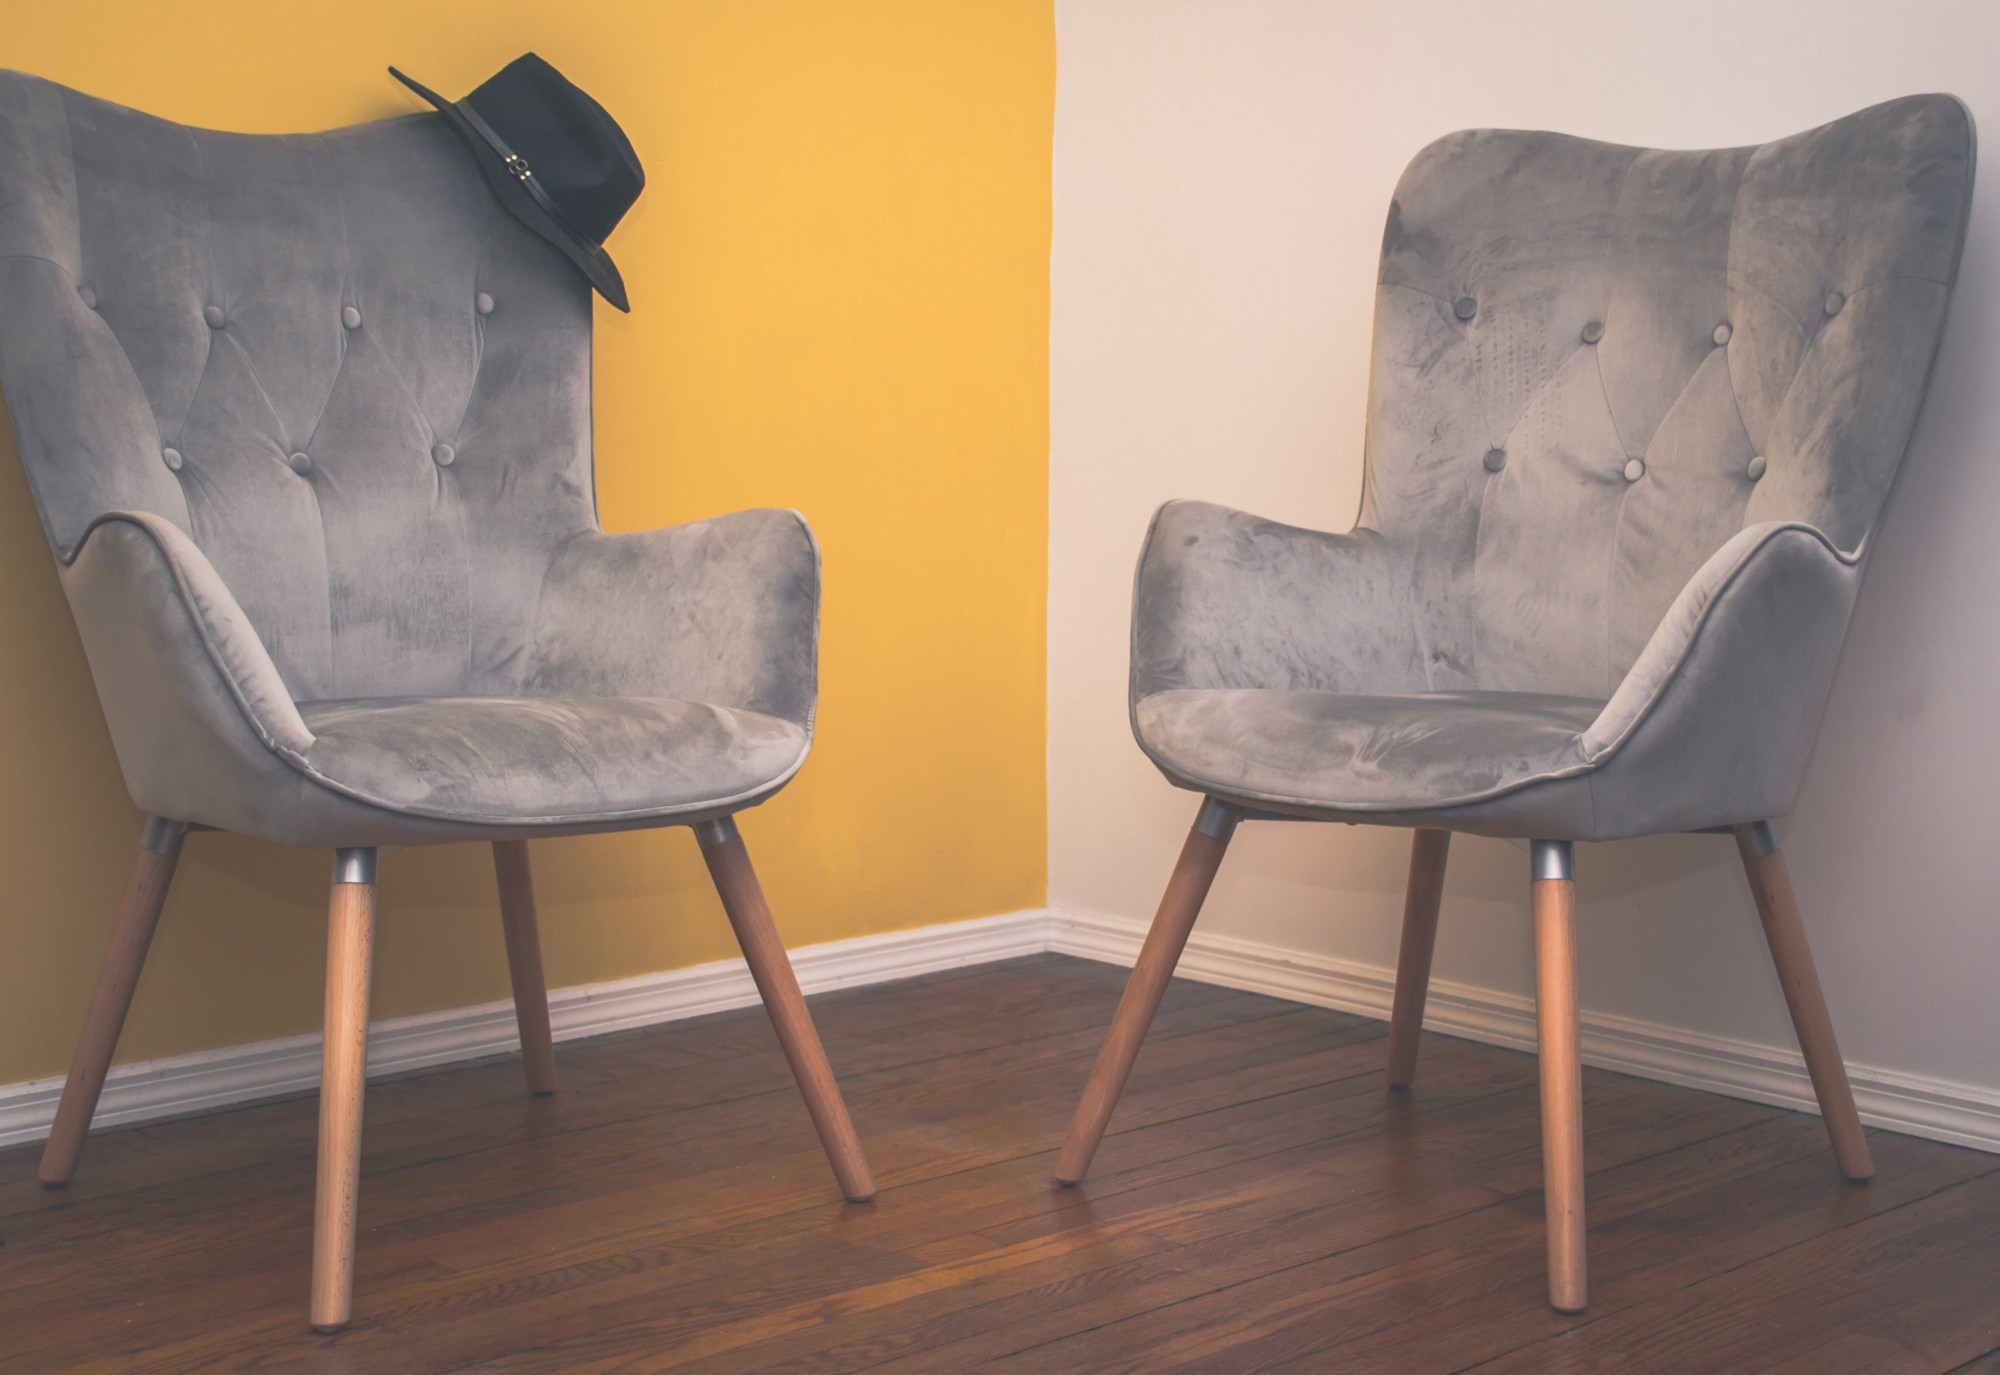 Two chairs facing each other.